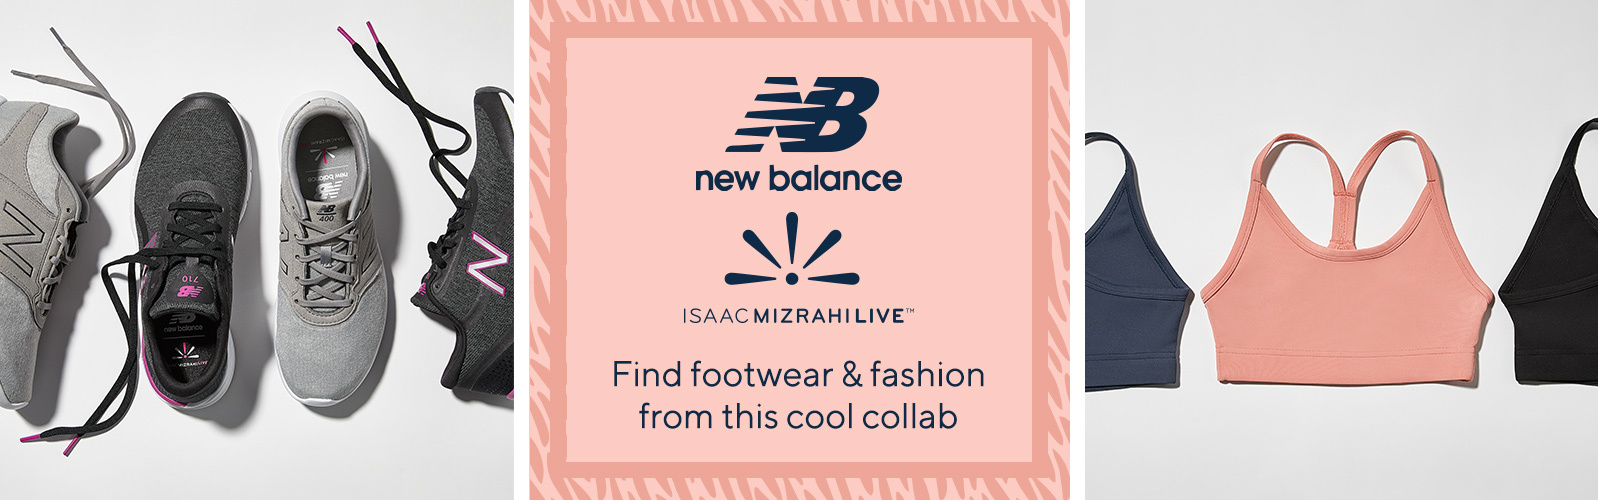 IML x New Balance Find footwear & fashion from this cool collab